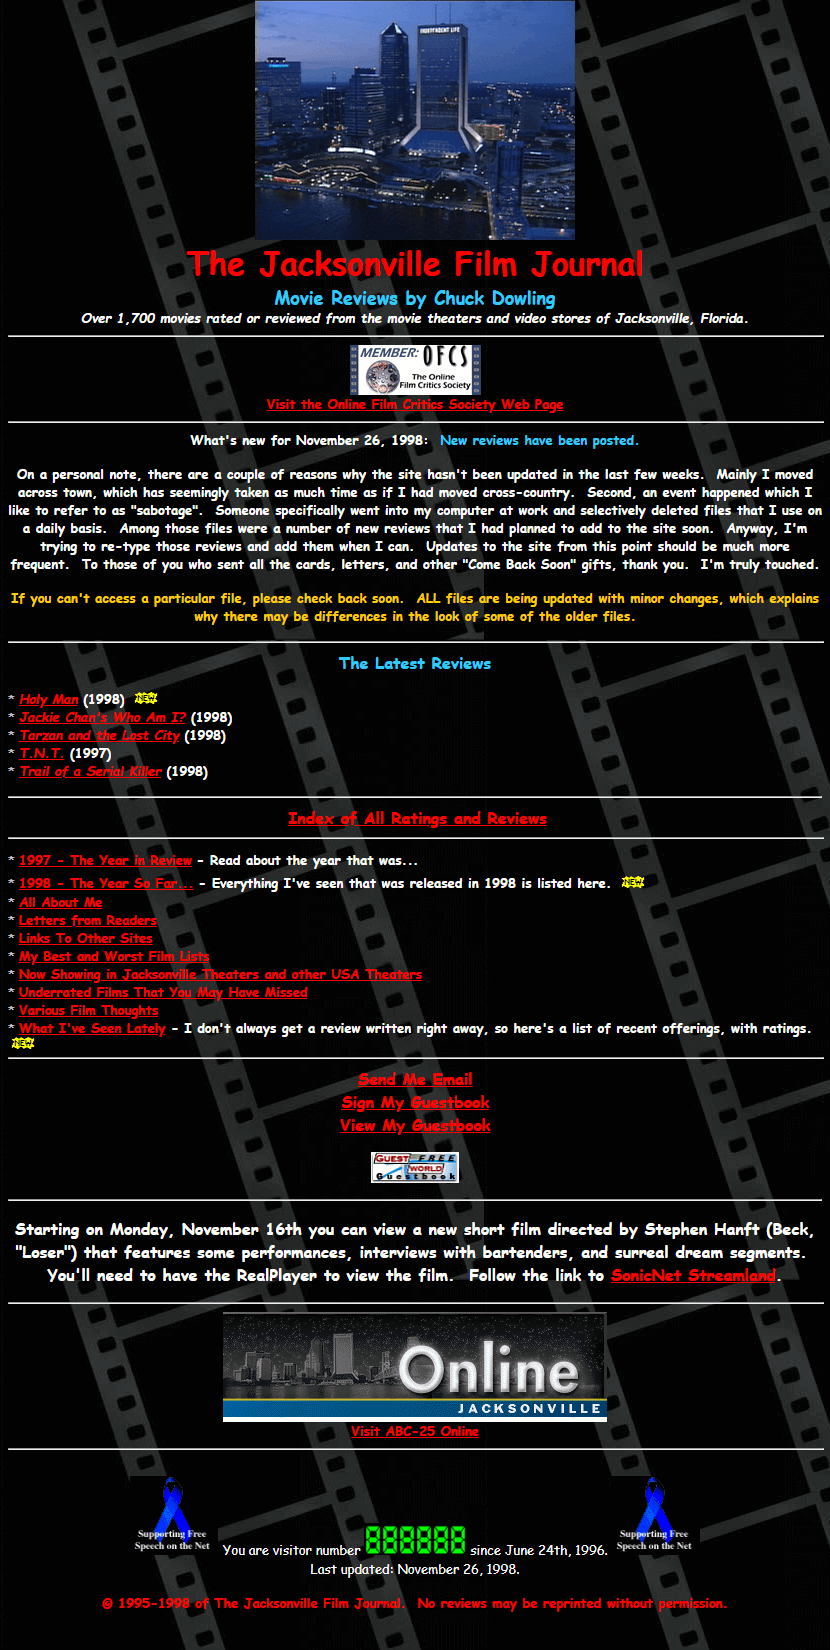 The Jacksonville Film Journal in 1998